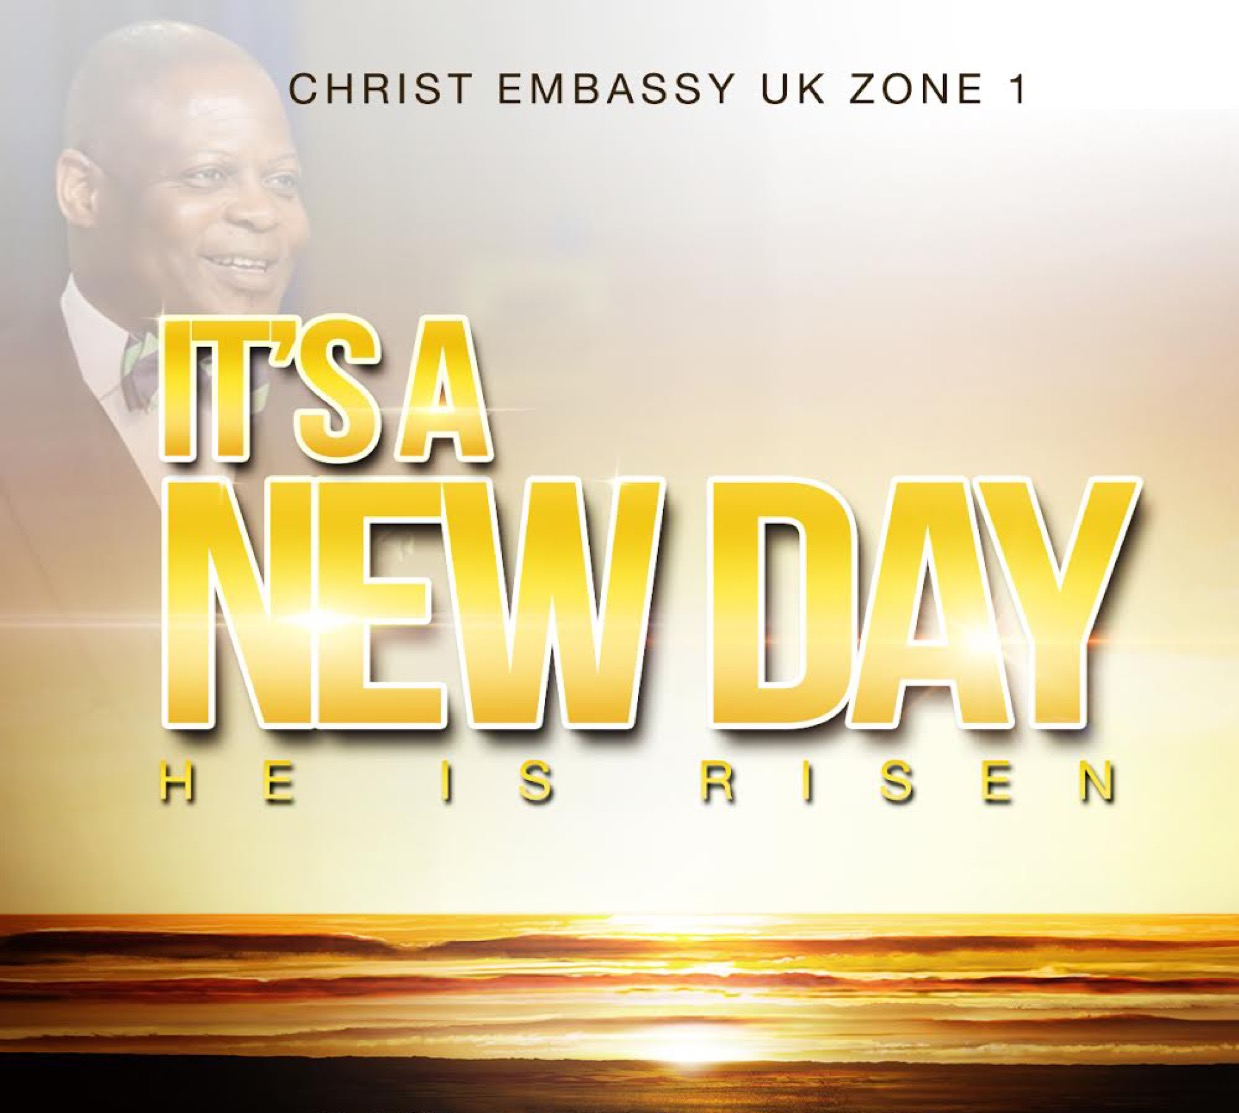 A new day equals new